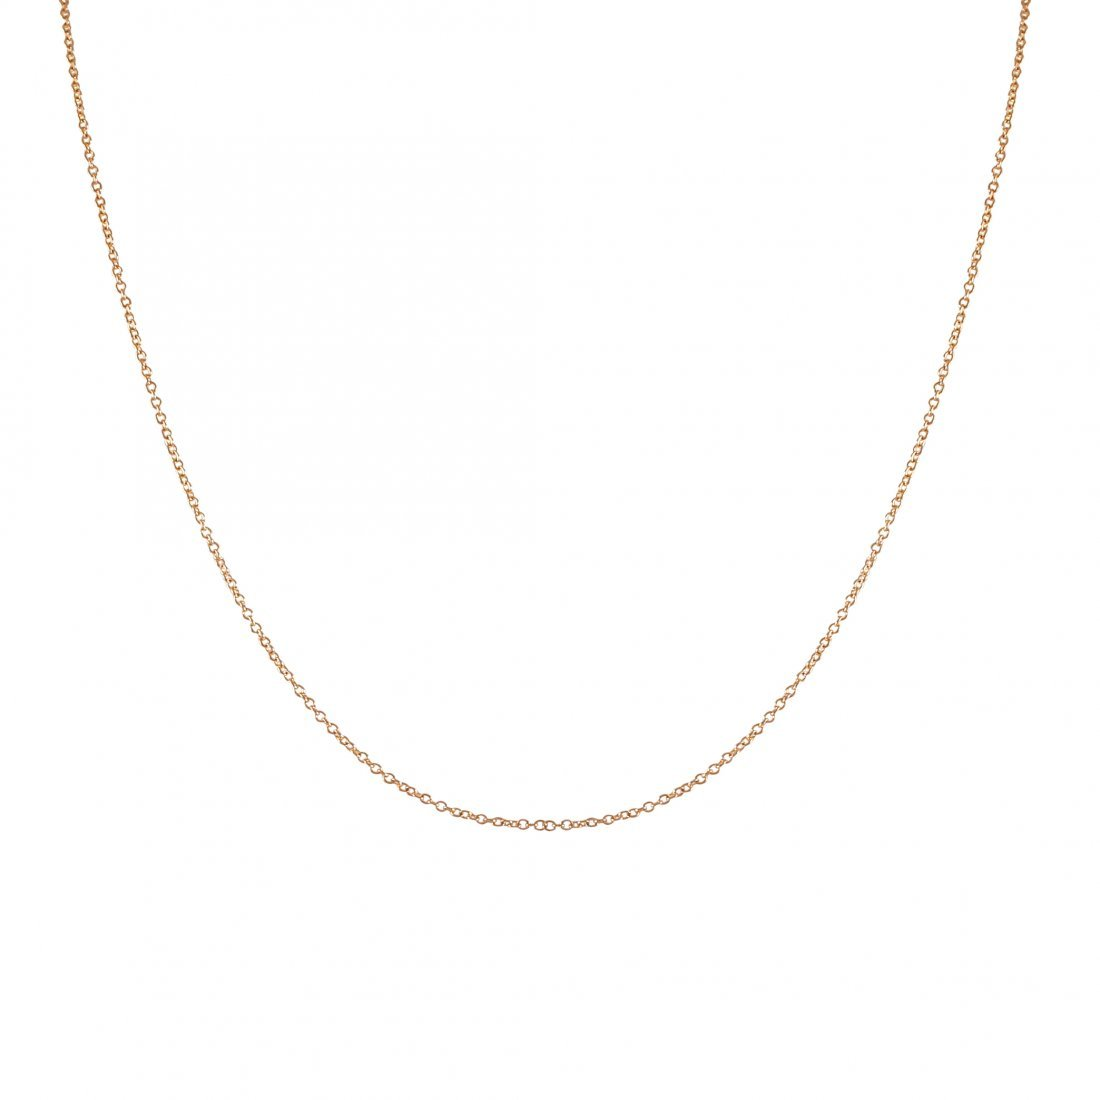 Rose Plated Sterling Silver Link Chain 16